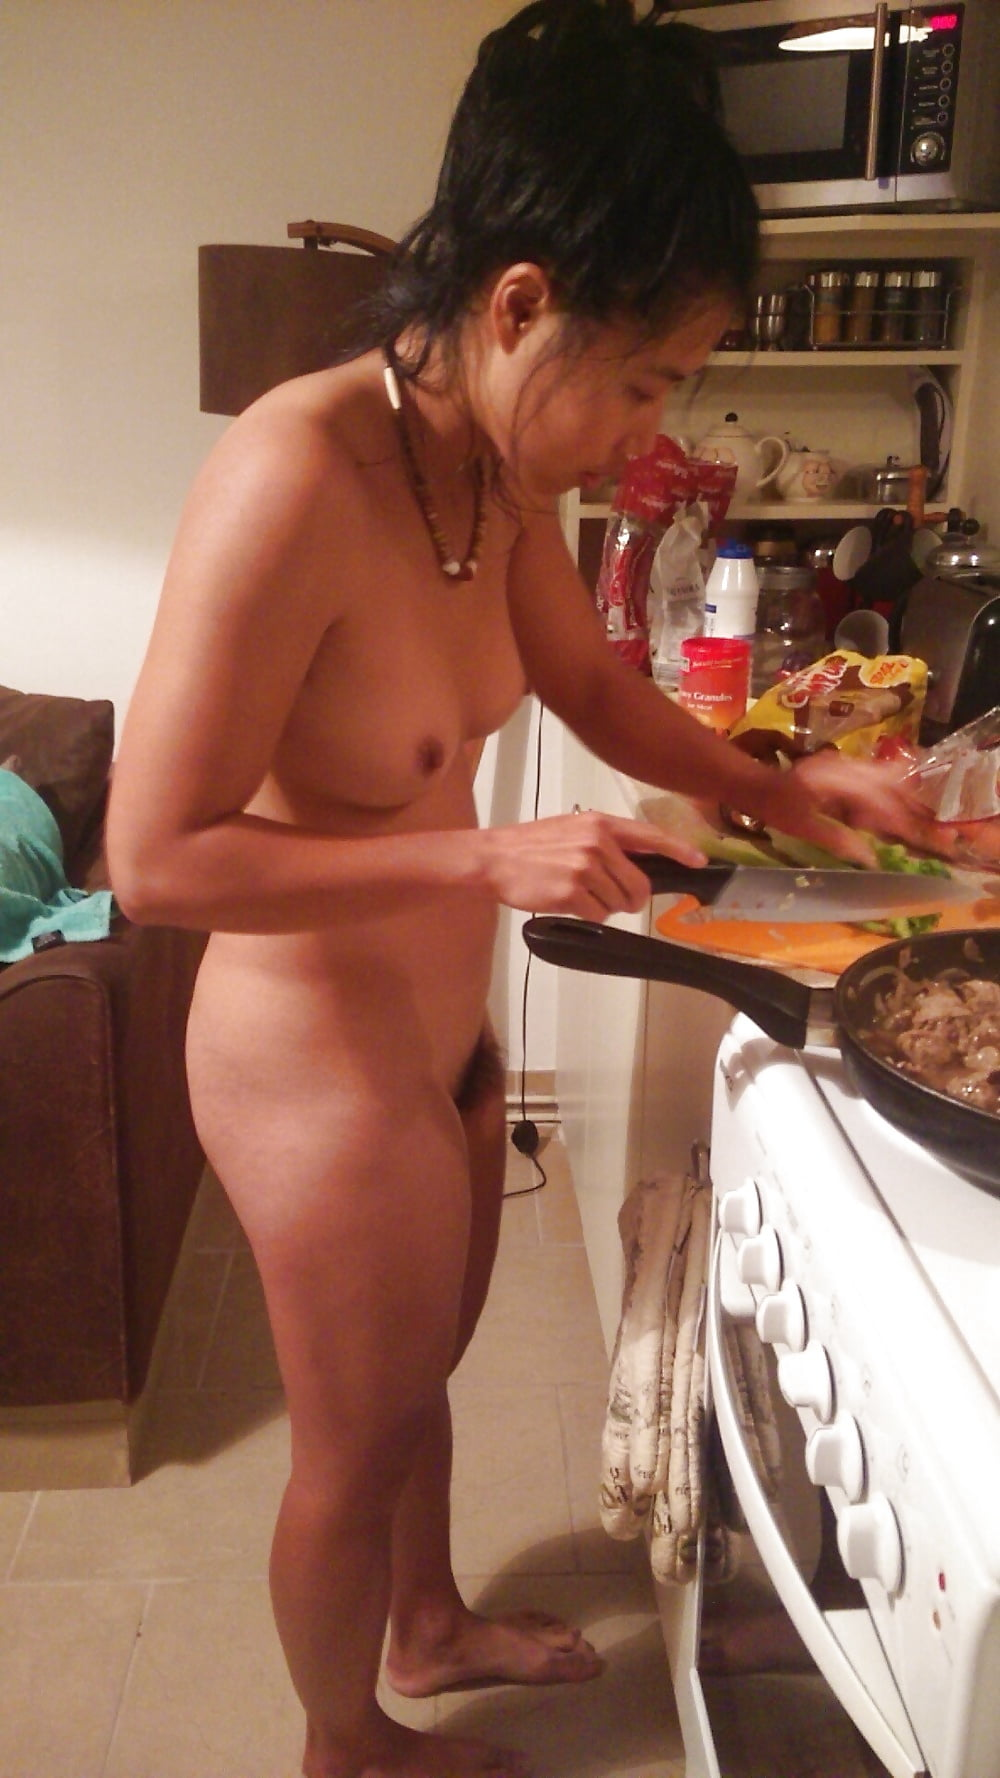 young-hot-girl-cooking-penis-girl-fuckig-position